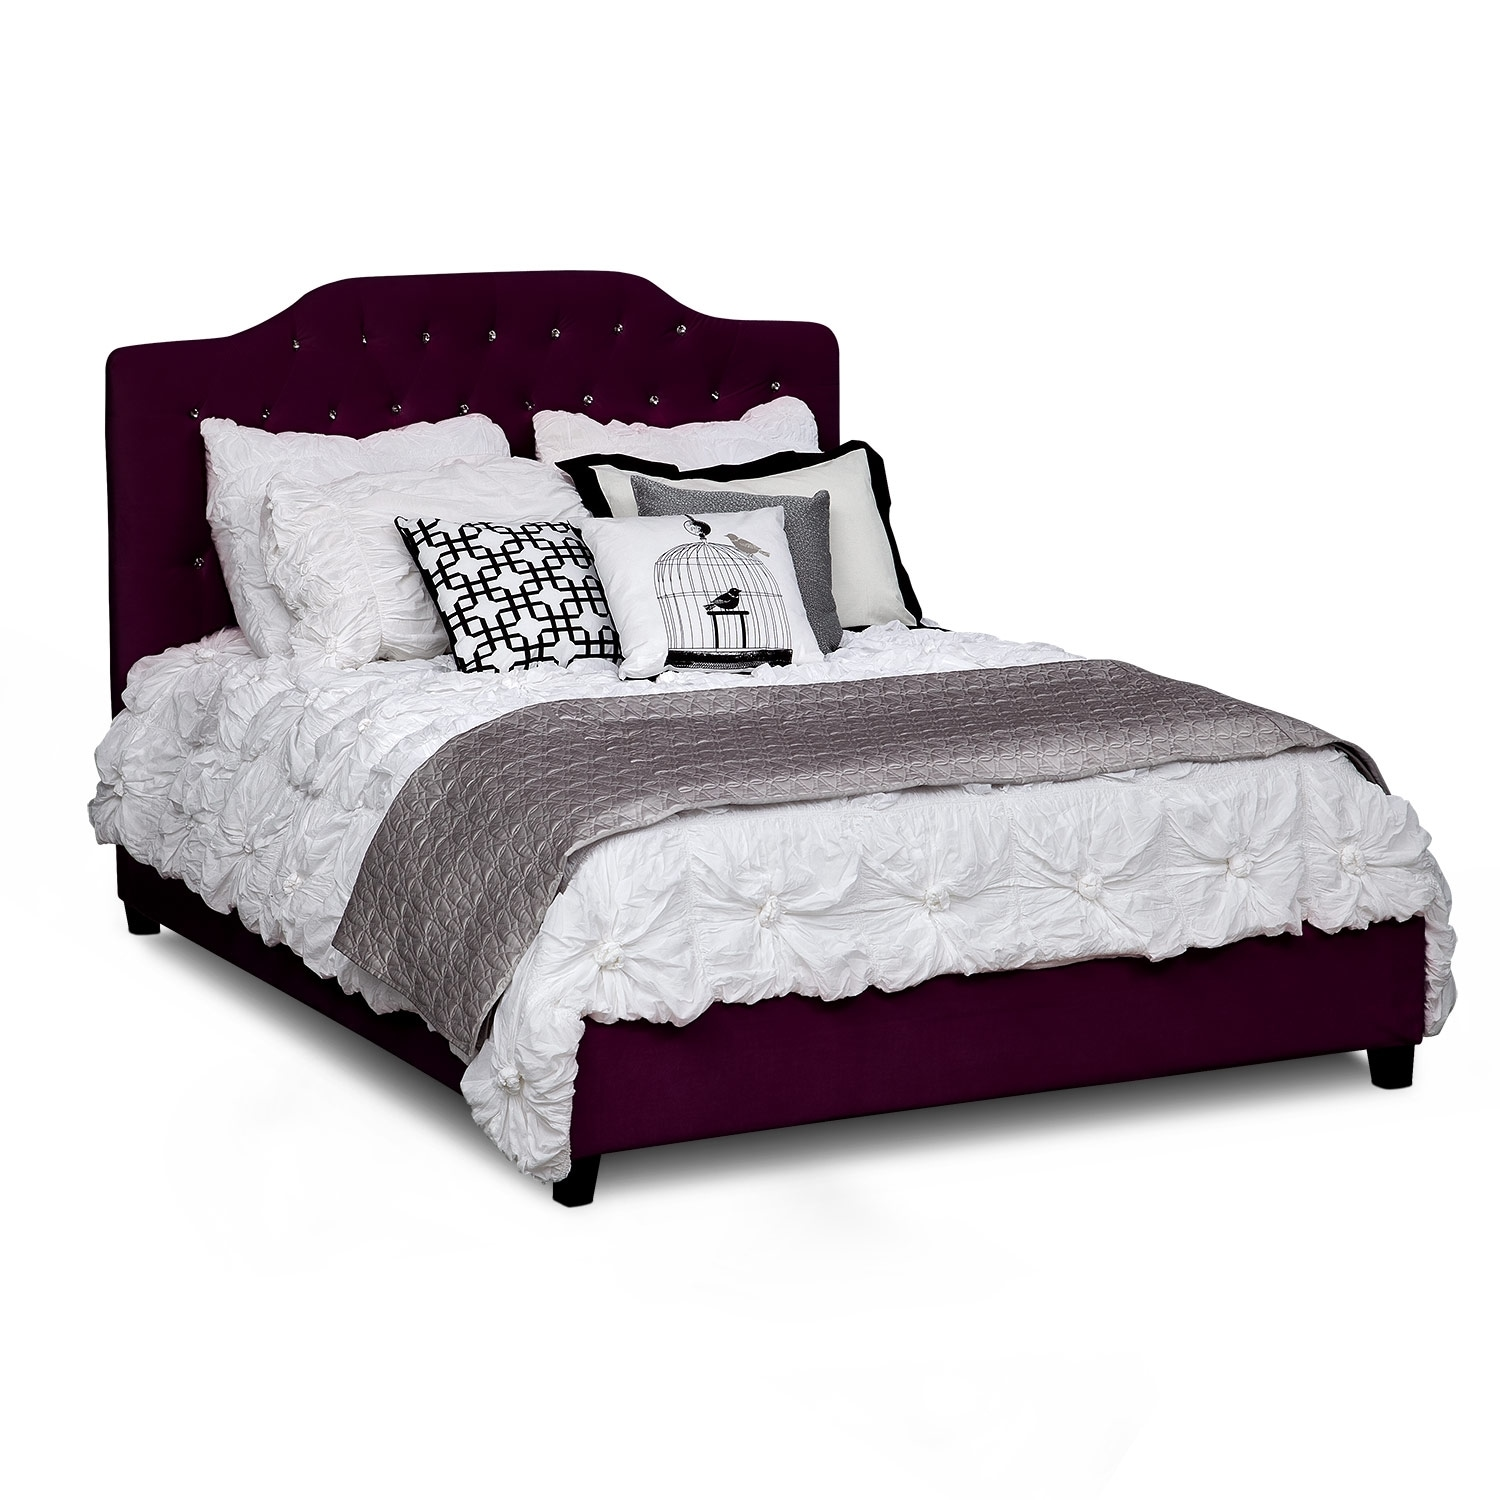 Bedroom Furniture - Valerie II Queen Bed